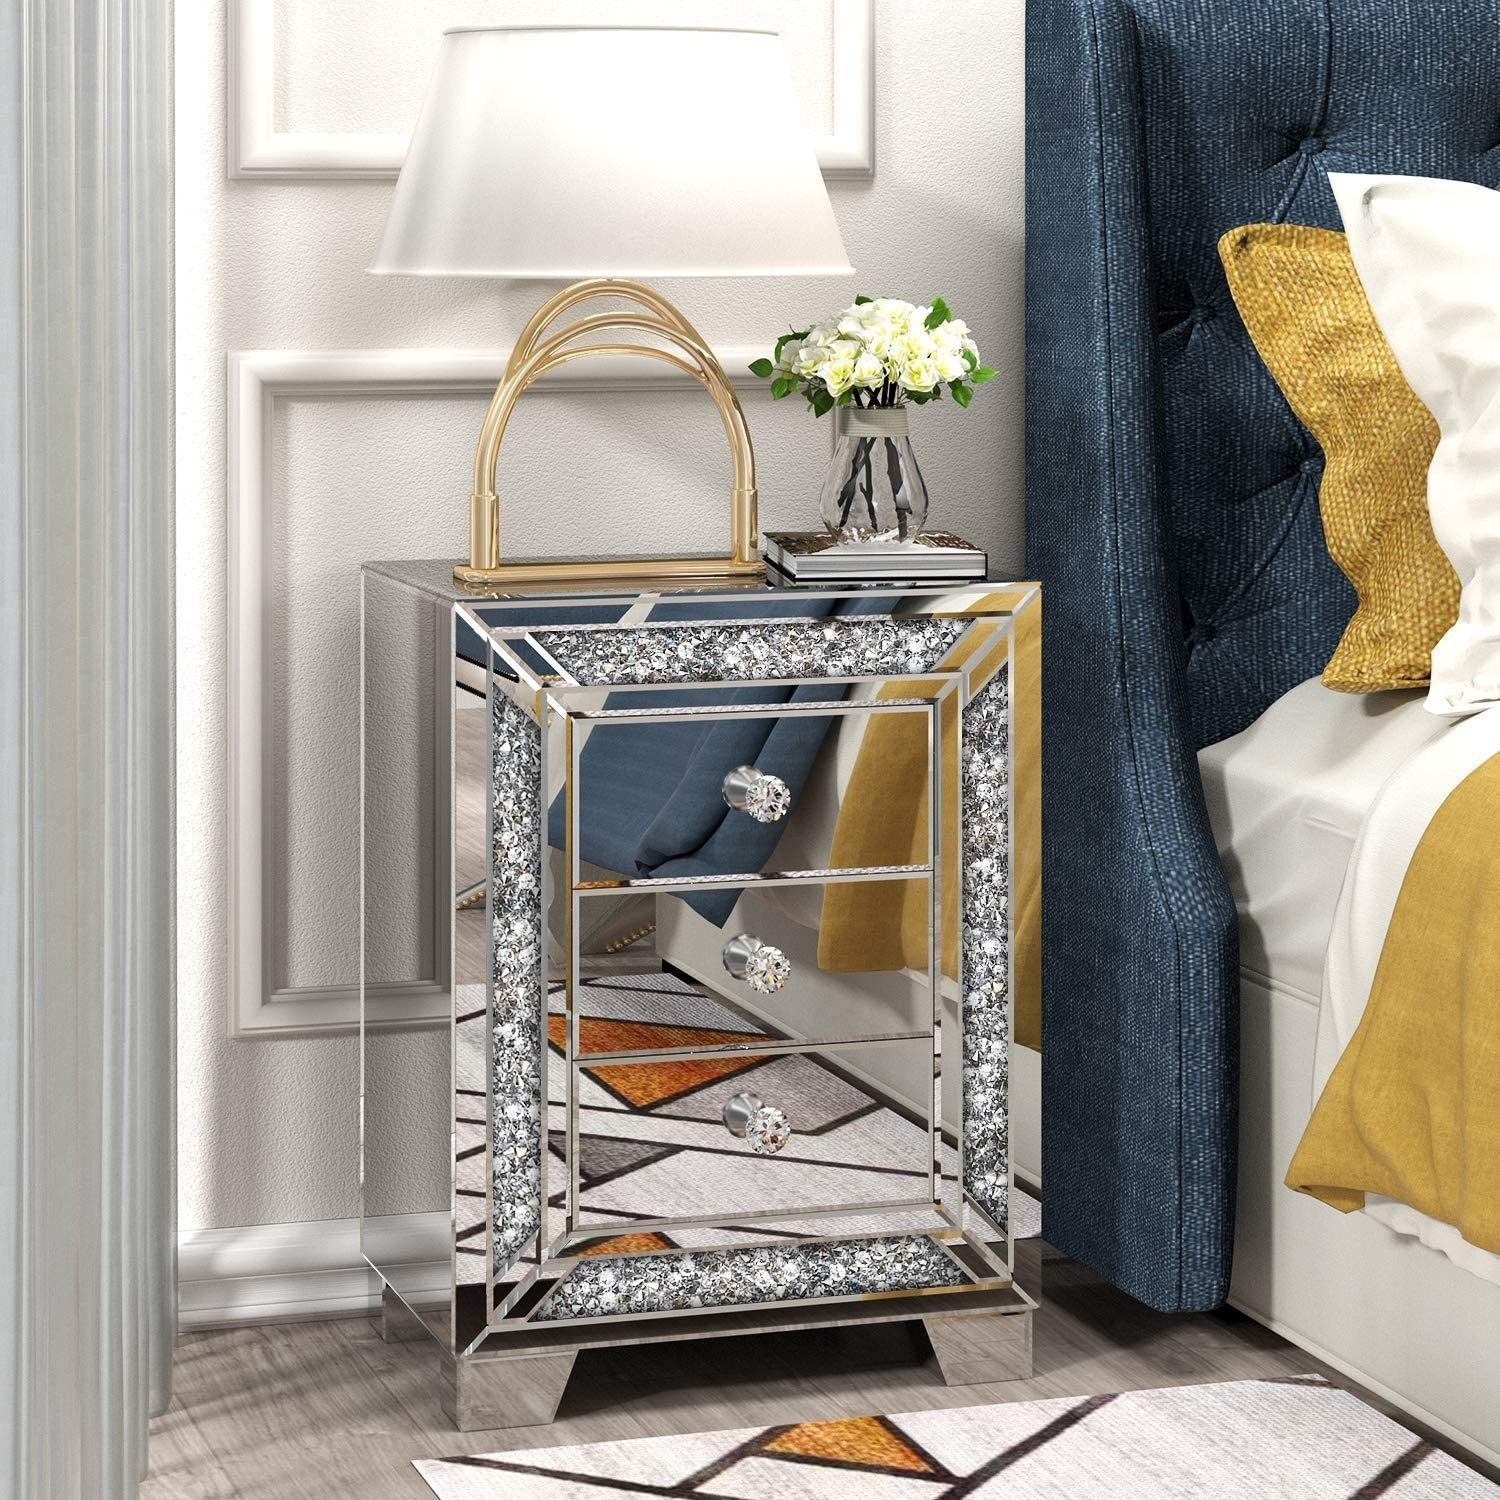 Silver mirrored bedside table with three drawers, a crystal border around the front, and crystal knobs.